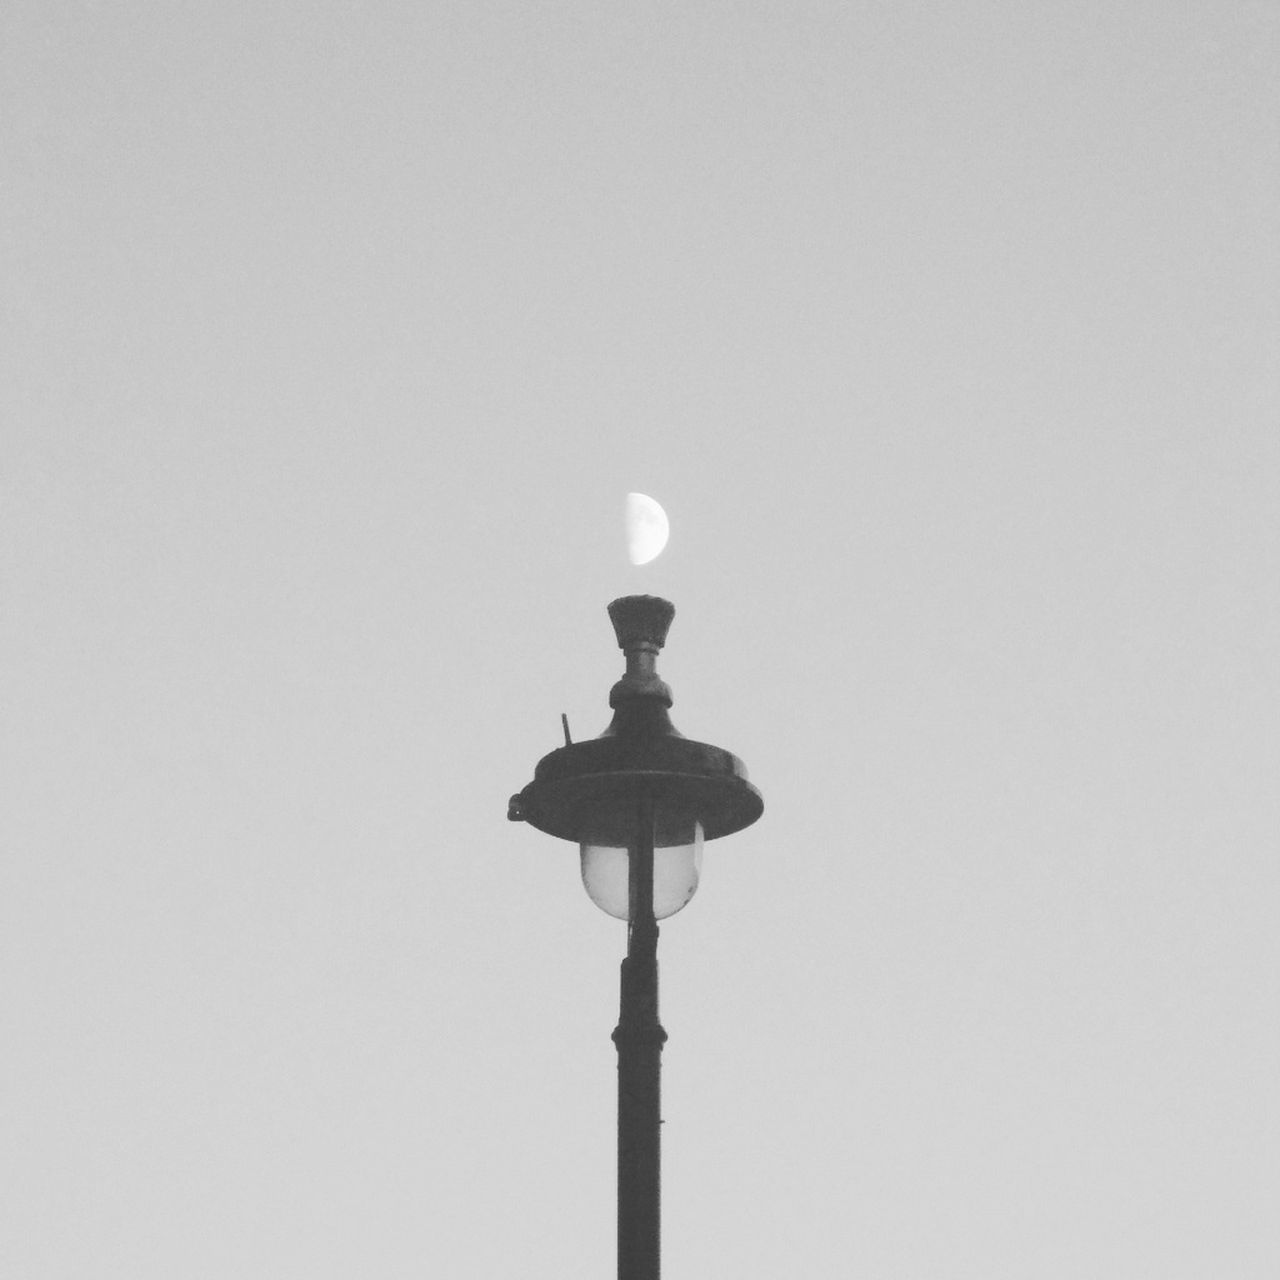 lighting equipment, copy space, low angle view, clear sky, no people, moon, floodlight, illuminated, outdoors, bird, nature, day, sky